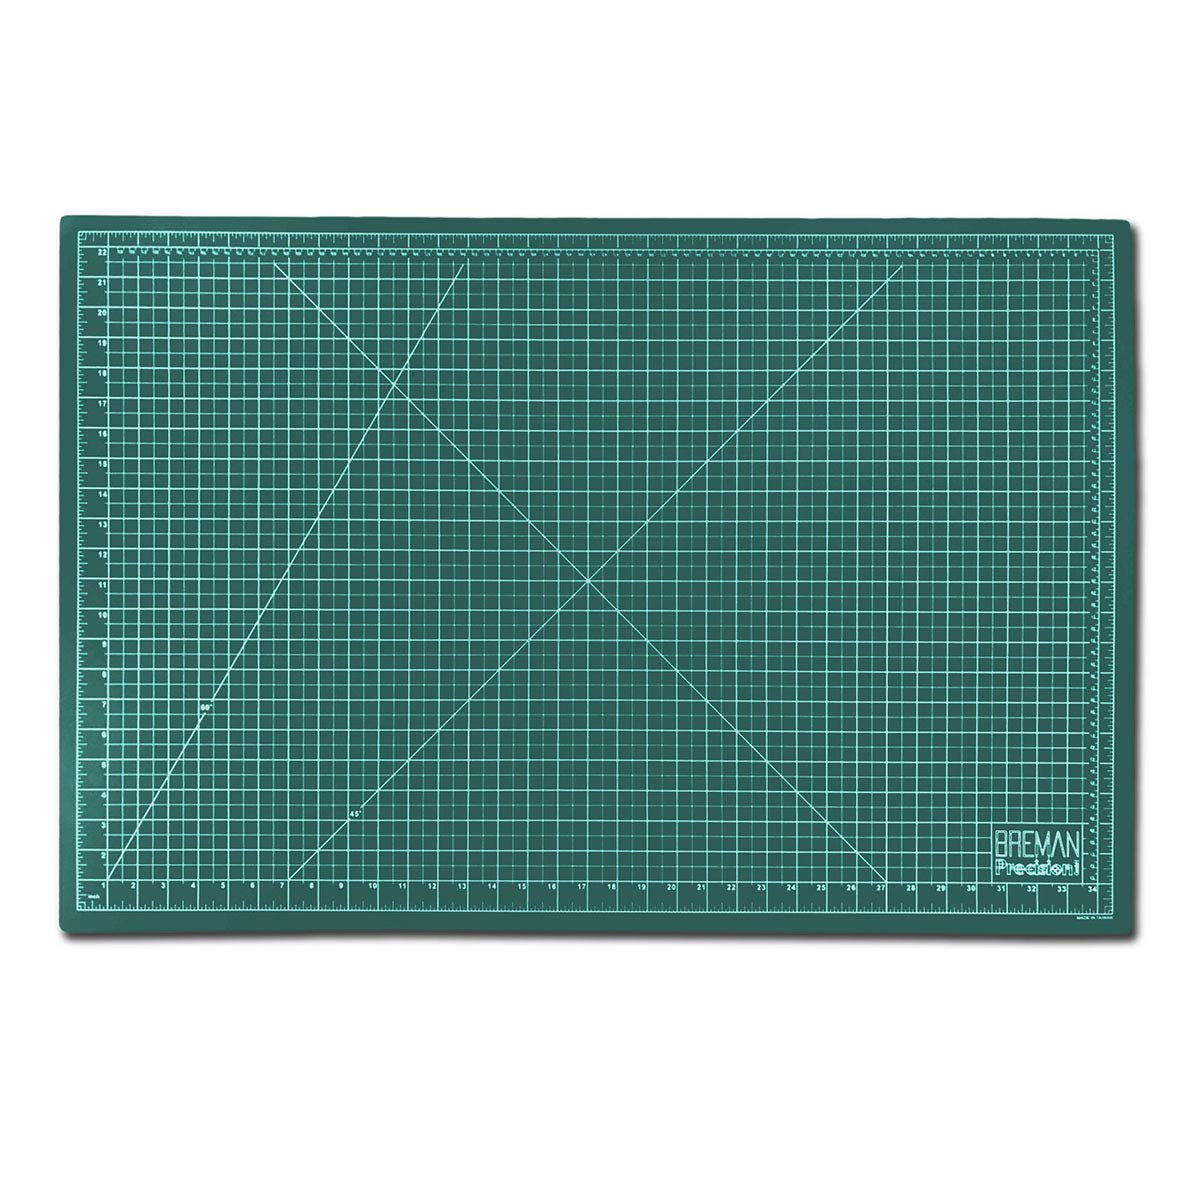 Large Self Healing Cutting Mat – Professional Double Sided Flexible Fabric Rotary Mat Ideal for All Arts & Crafts Including Sewing Quilting– A2(24X18) Inches 4336849724